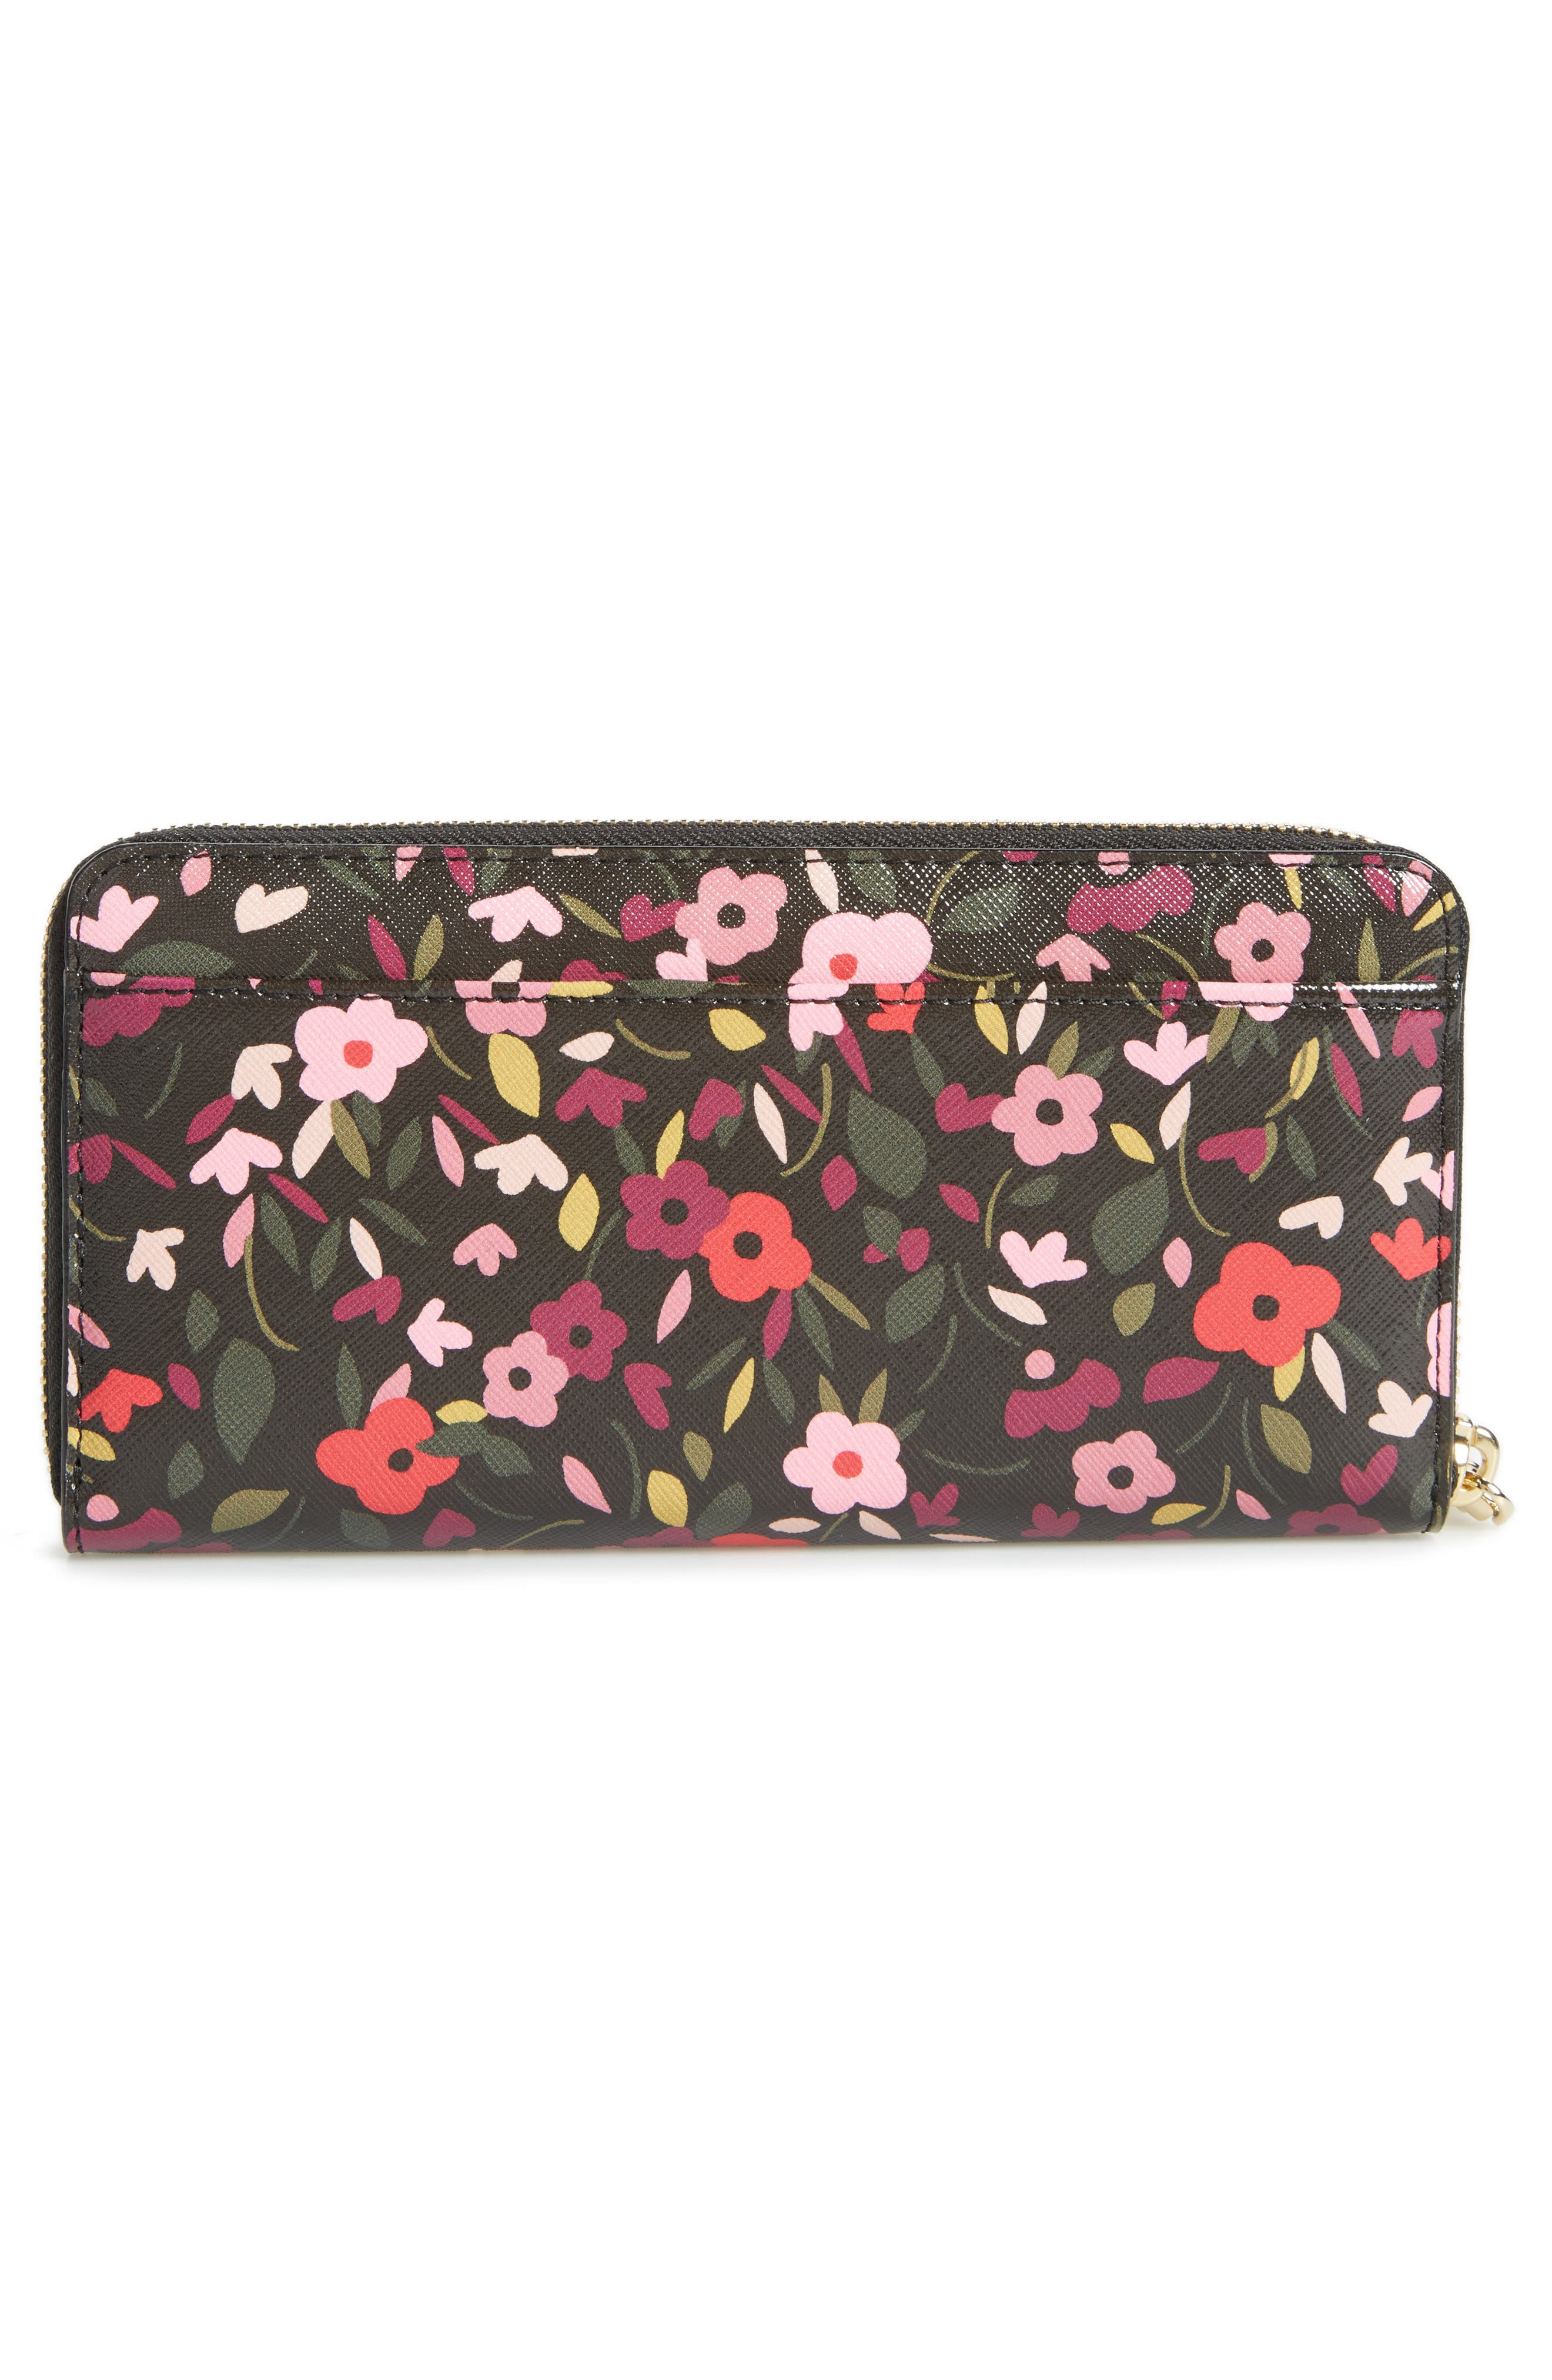 cameron street - lacey zip around wallet,                             Alternate thumbnail 4, color,                             001